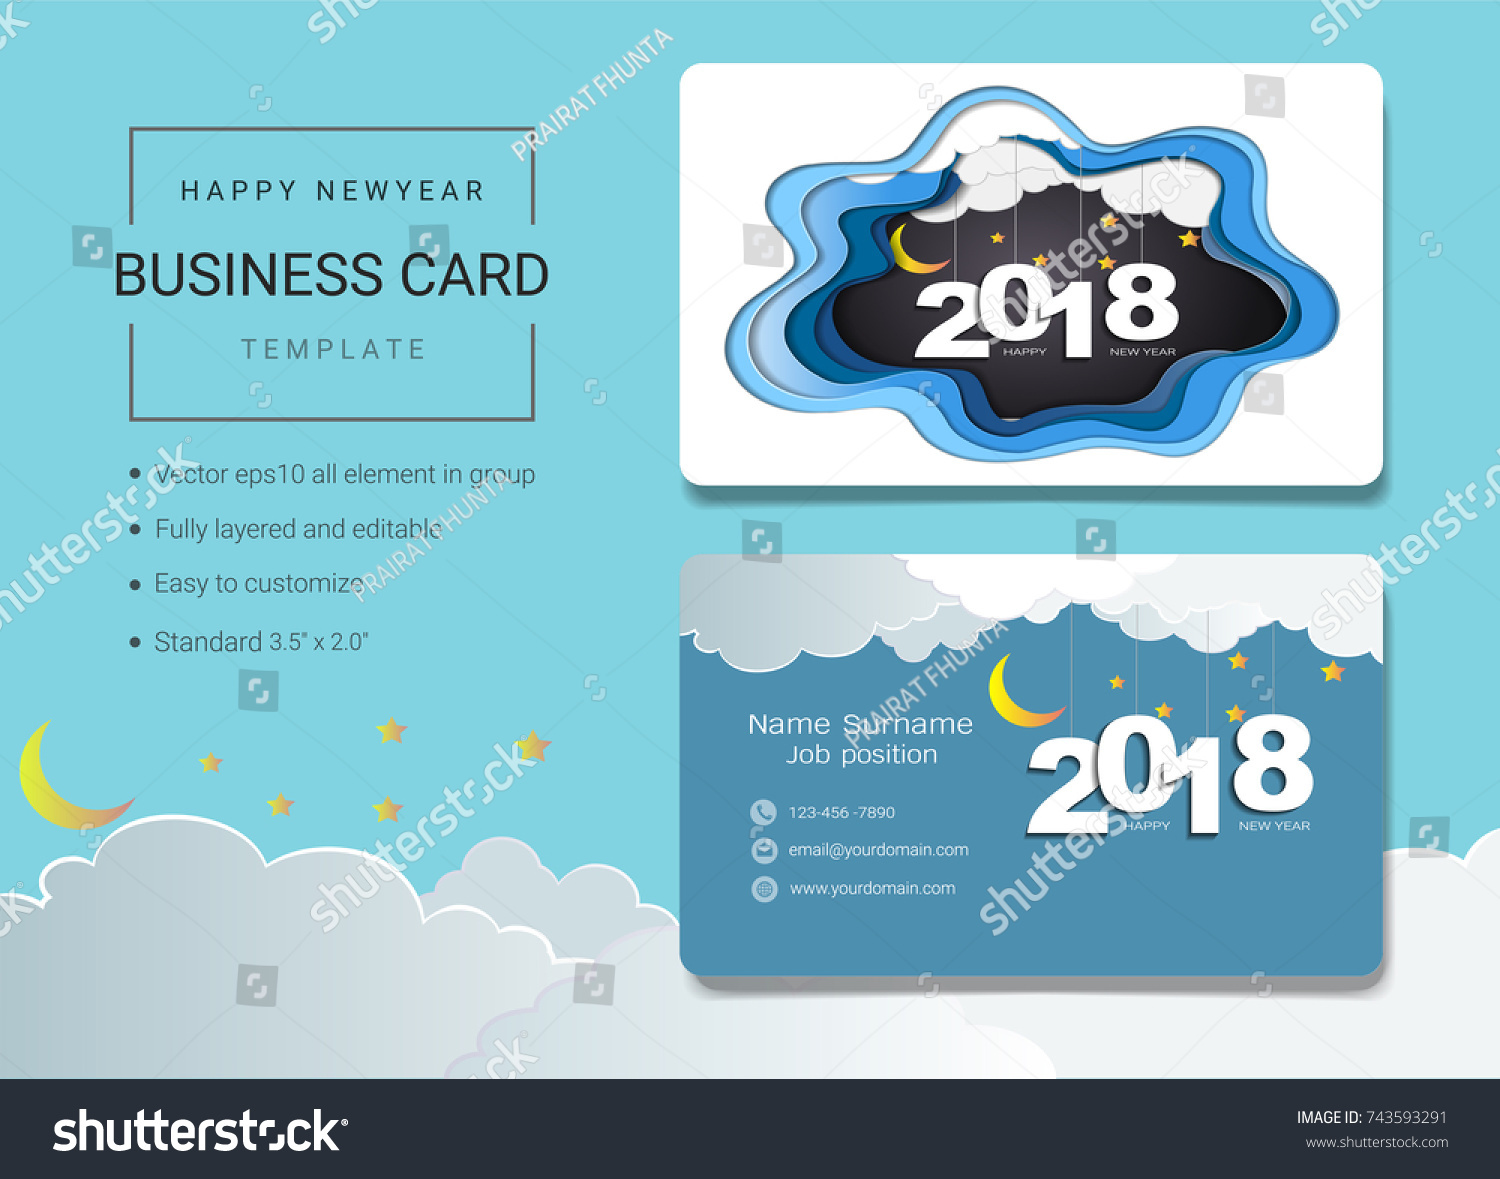 2018 Happy New Year Business Name Stock Vector 743593291 - Shutterstock